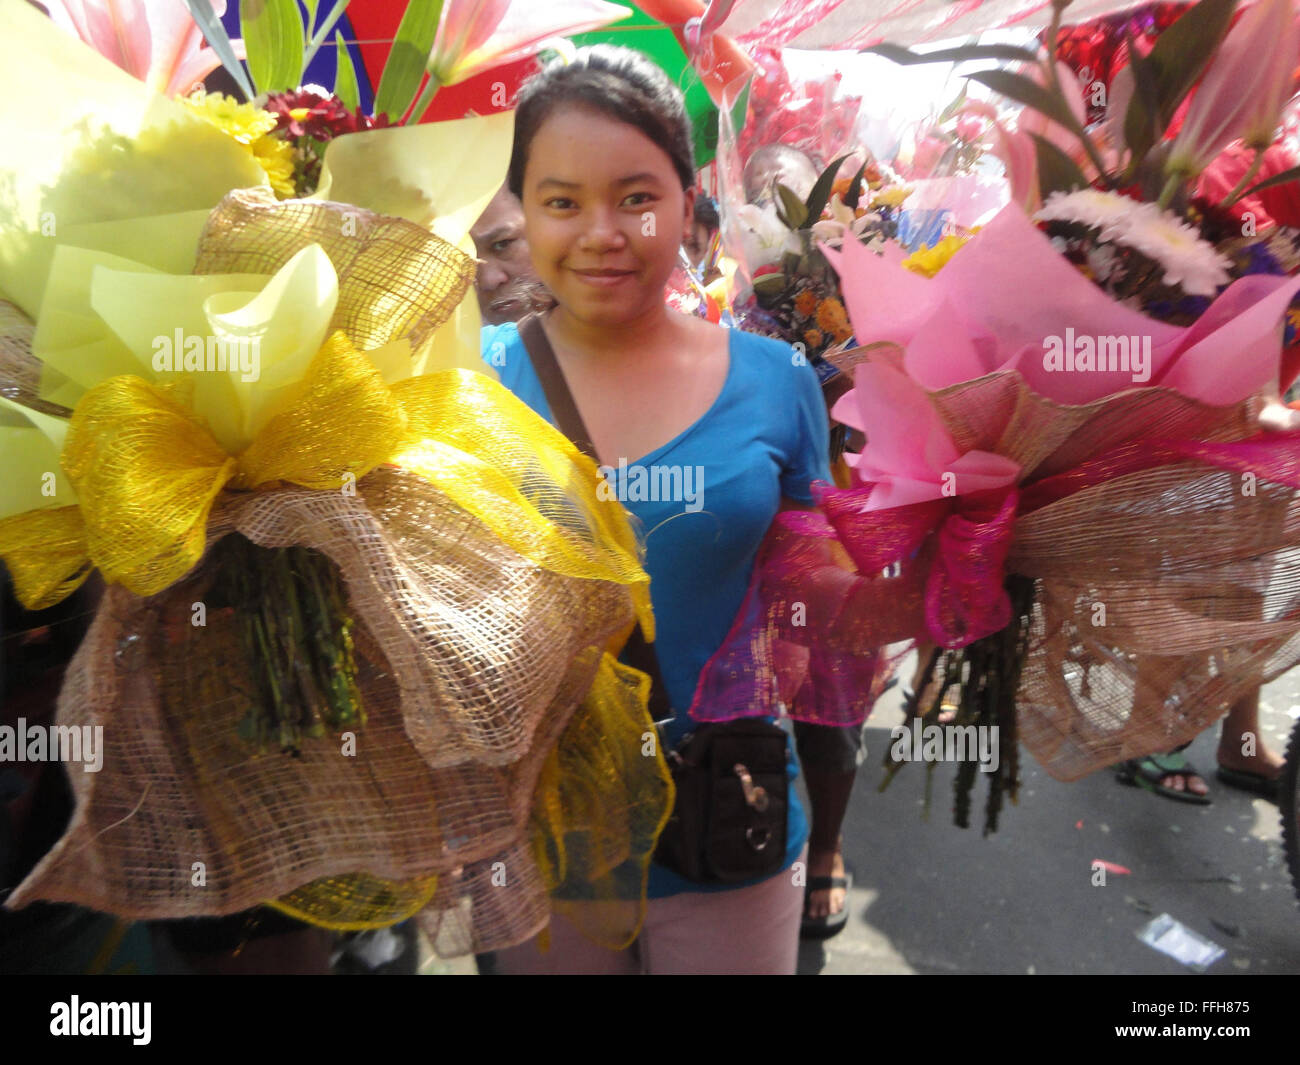 Manila, Philippines. 14th Feb, 2016. Filipinos carry bouquets of roses along the Dangwa flower market in Manila, Stock Photo